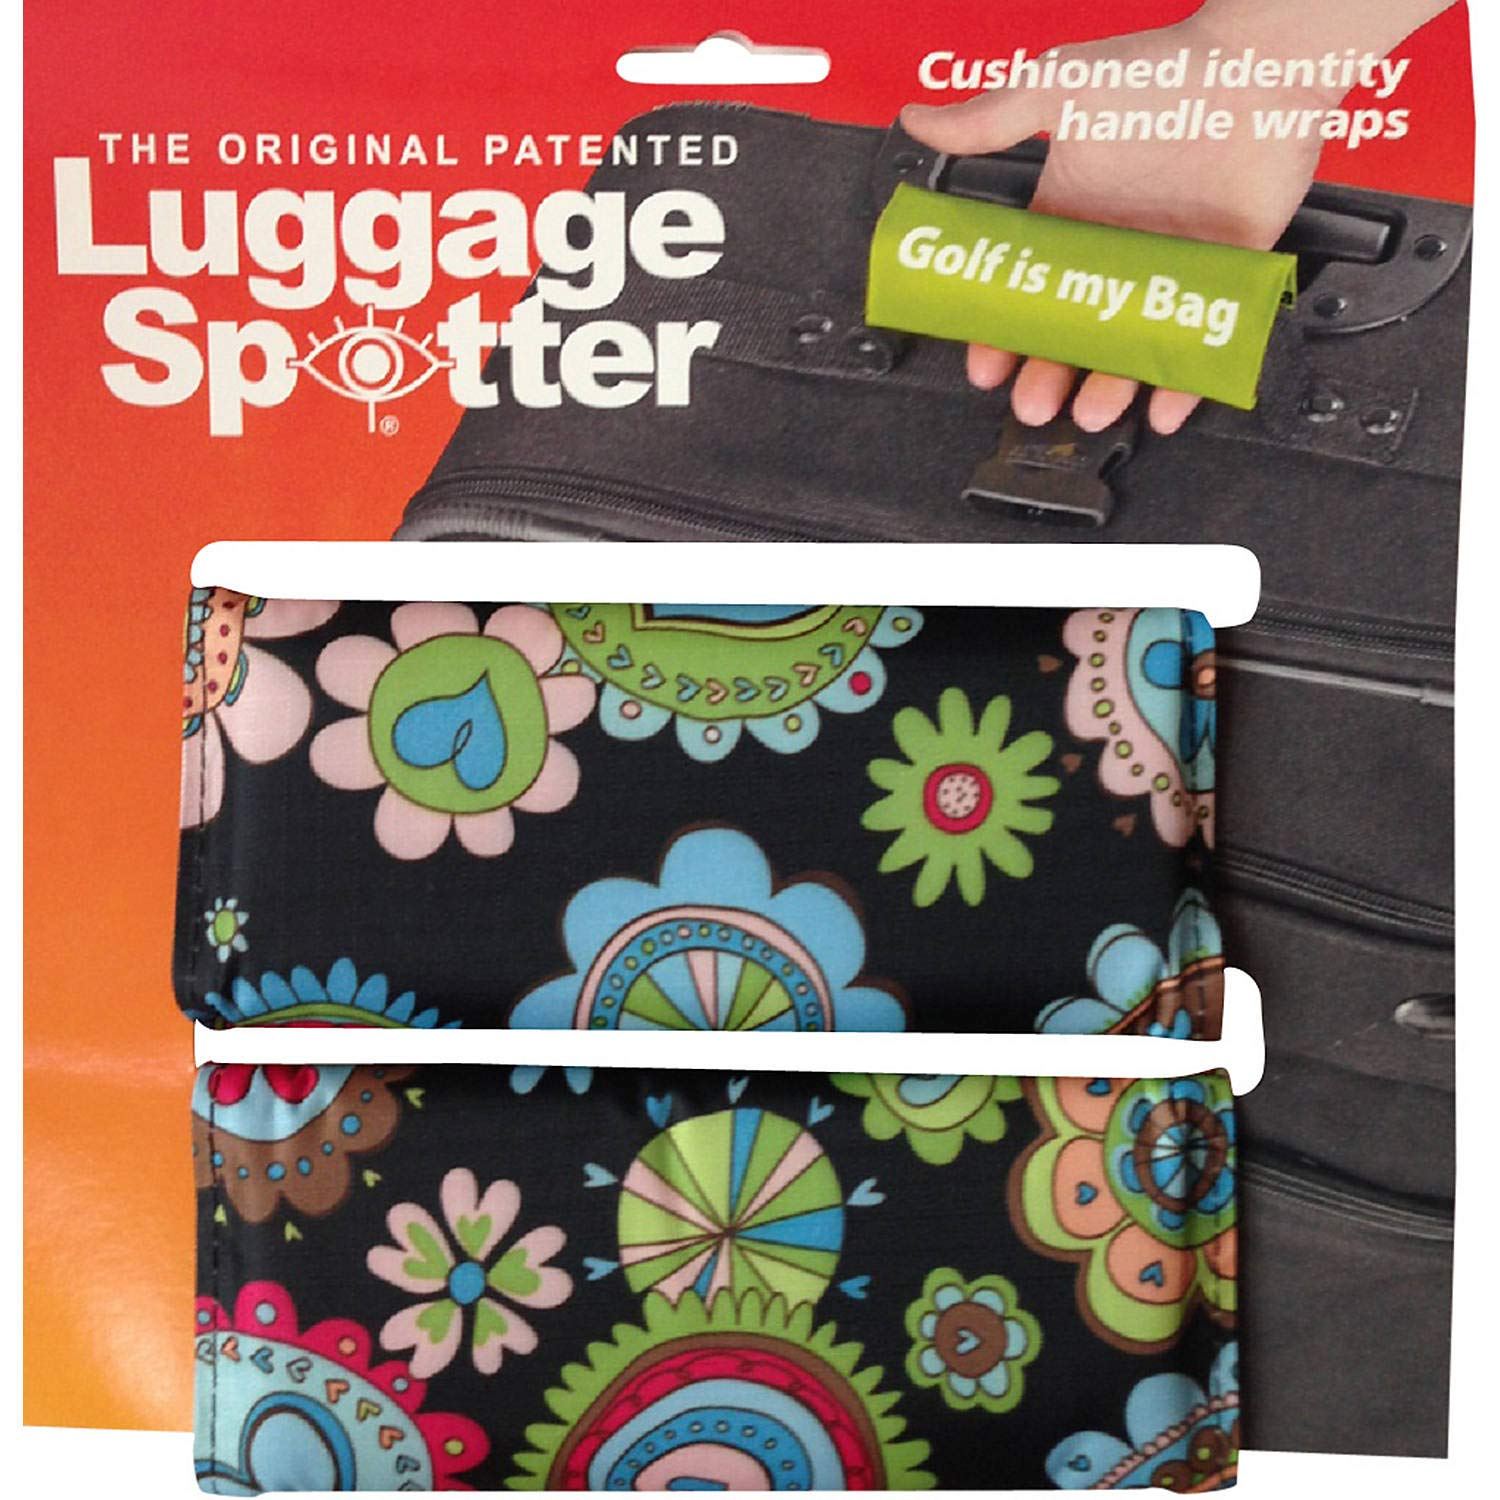 FLOWERS Luggage Spotter® Luggage Locator/Handle Grip/Luggage Grip/Travel Bag Tag/Luggage Handle Wrap (2 PACK) - ONLY A FEW LEFT! by Luggage Spotter